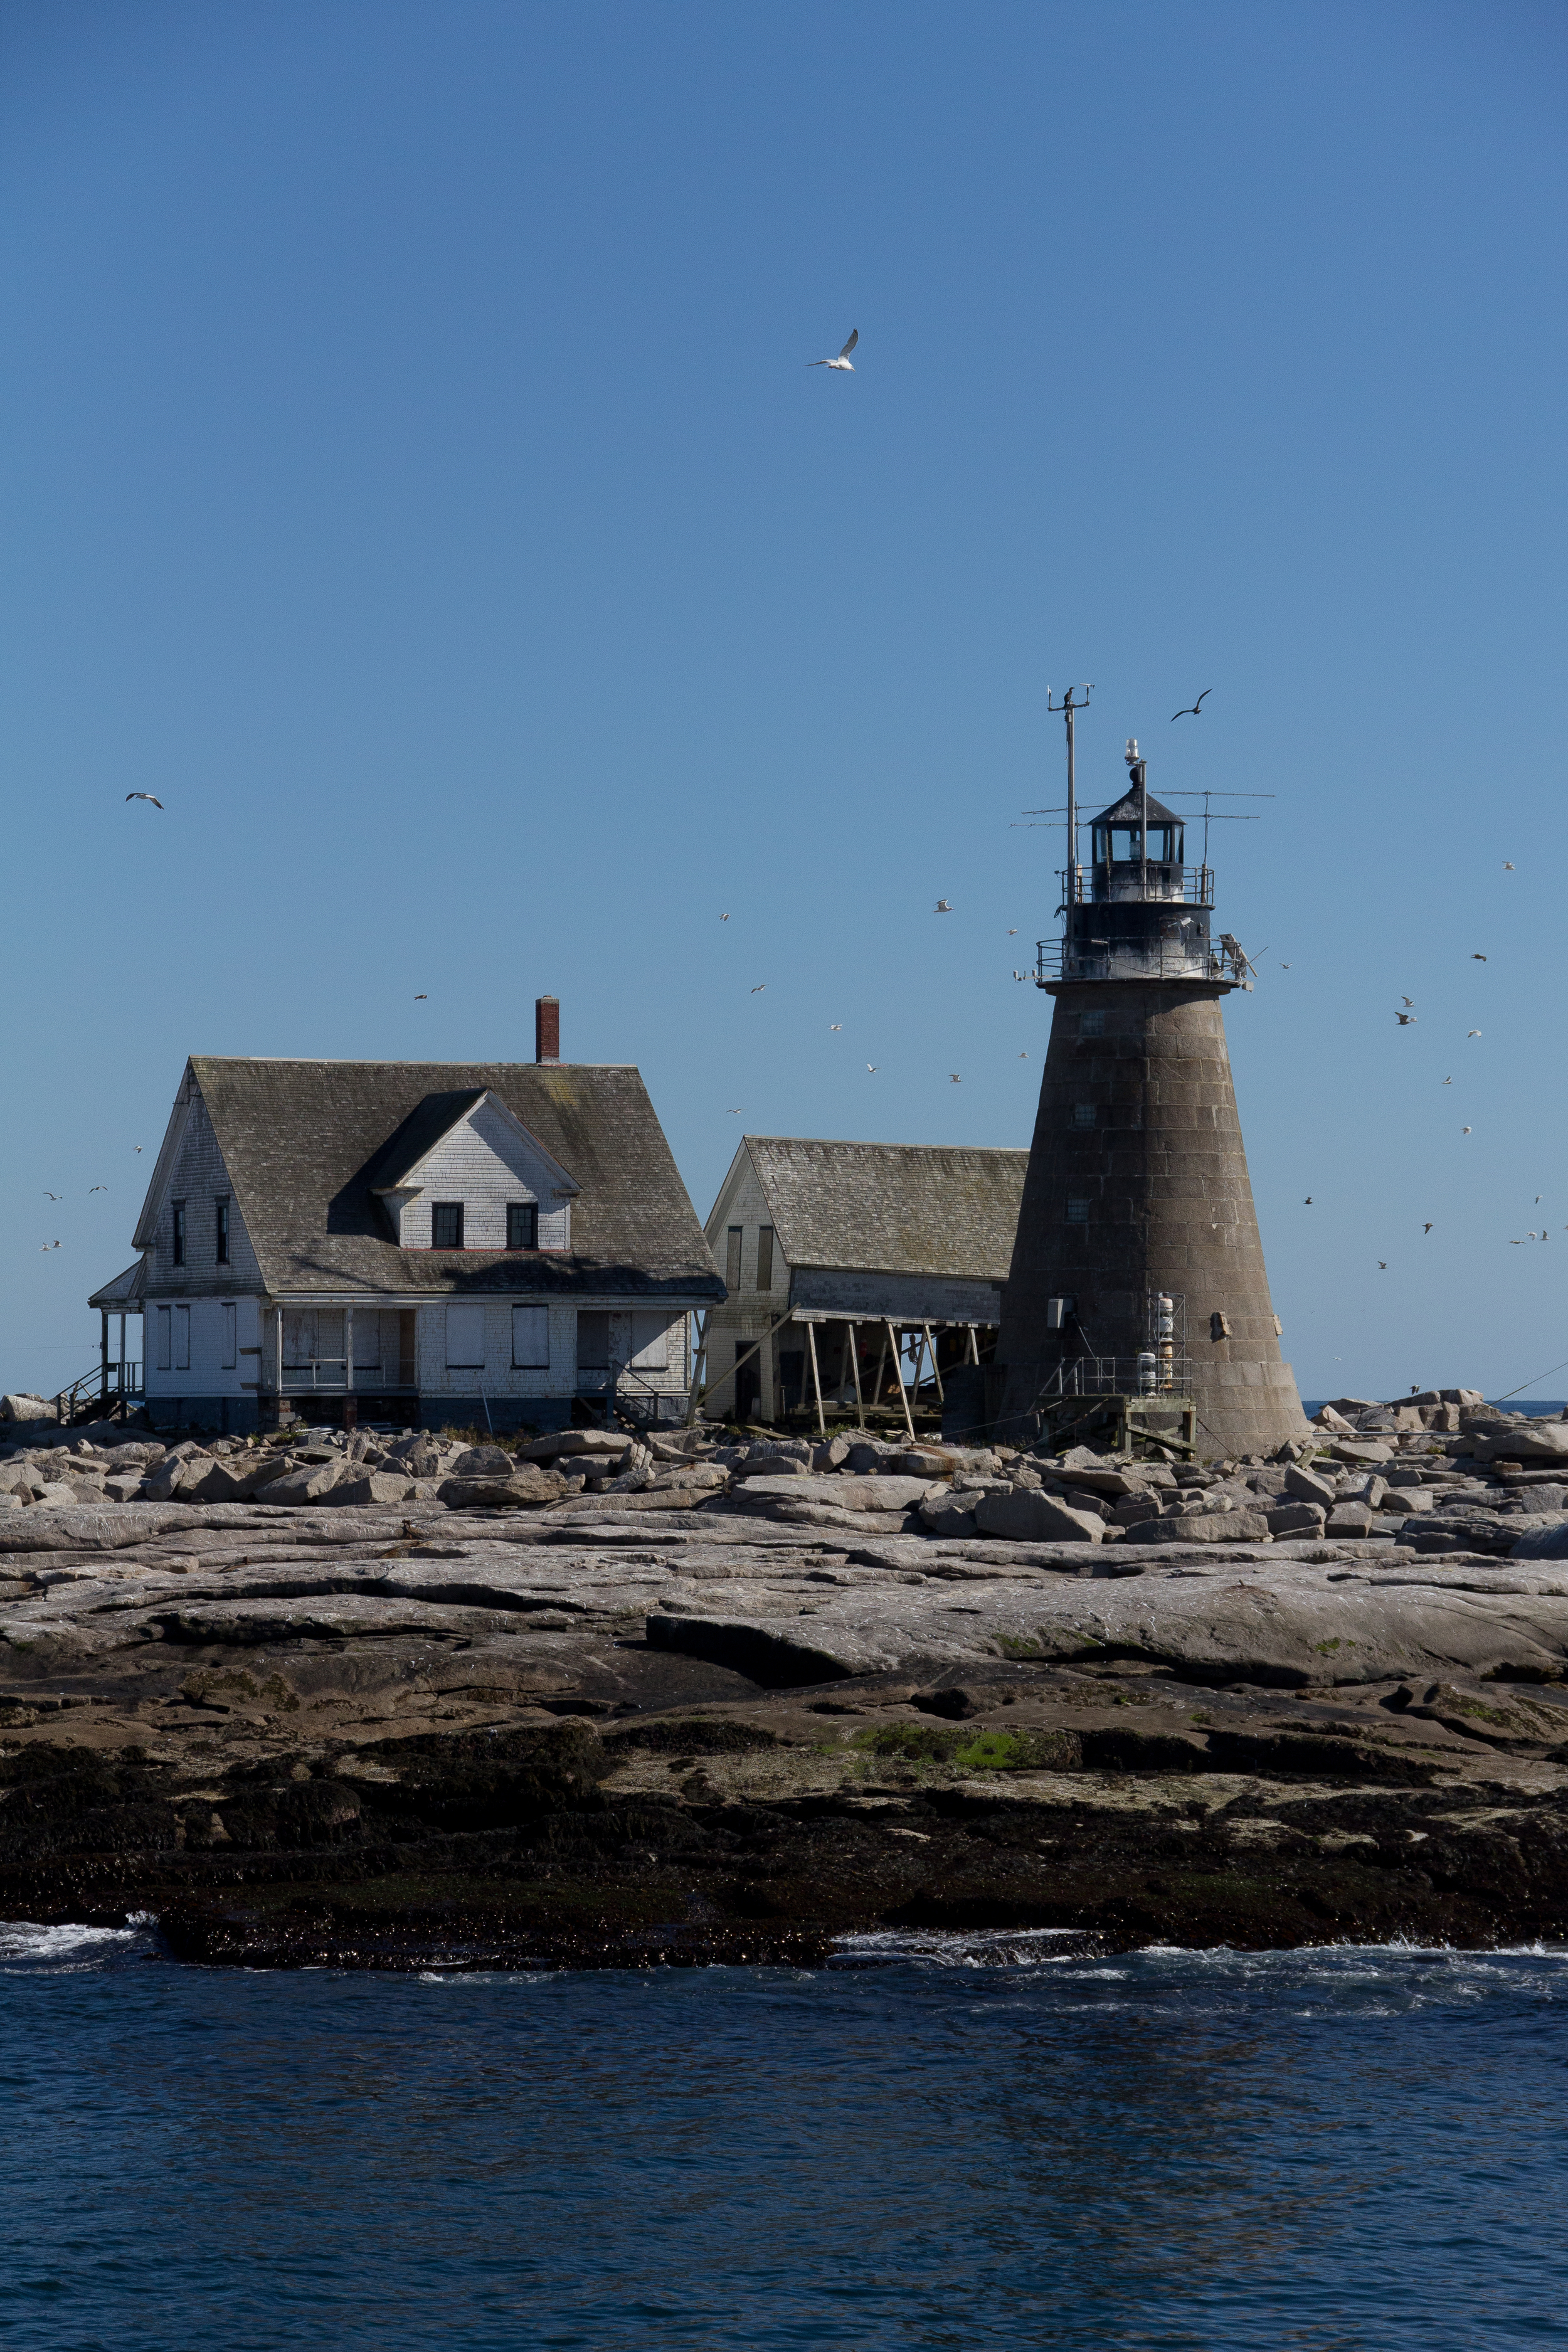 Mount Desert Rock Light Station